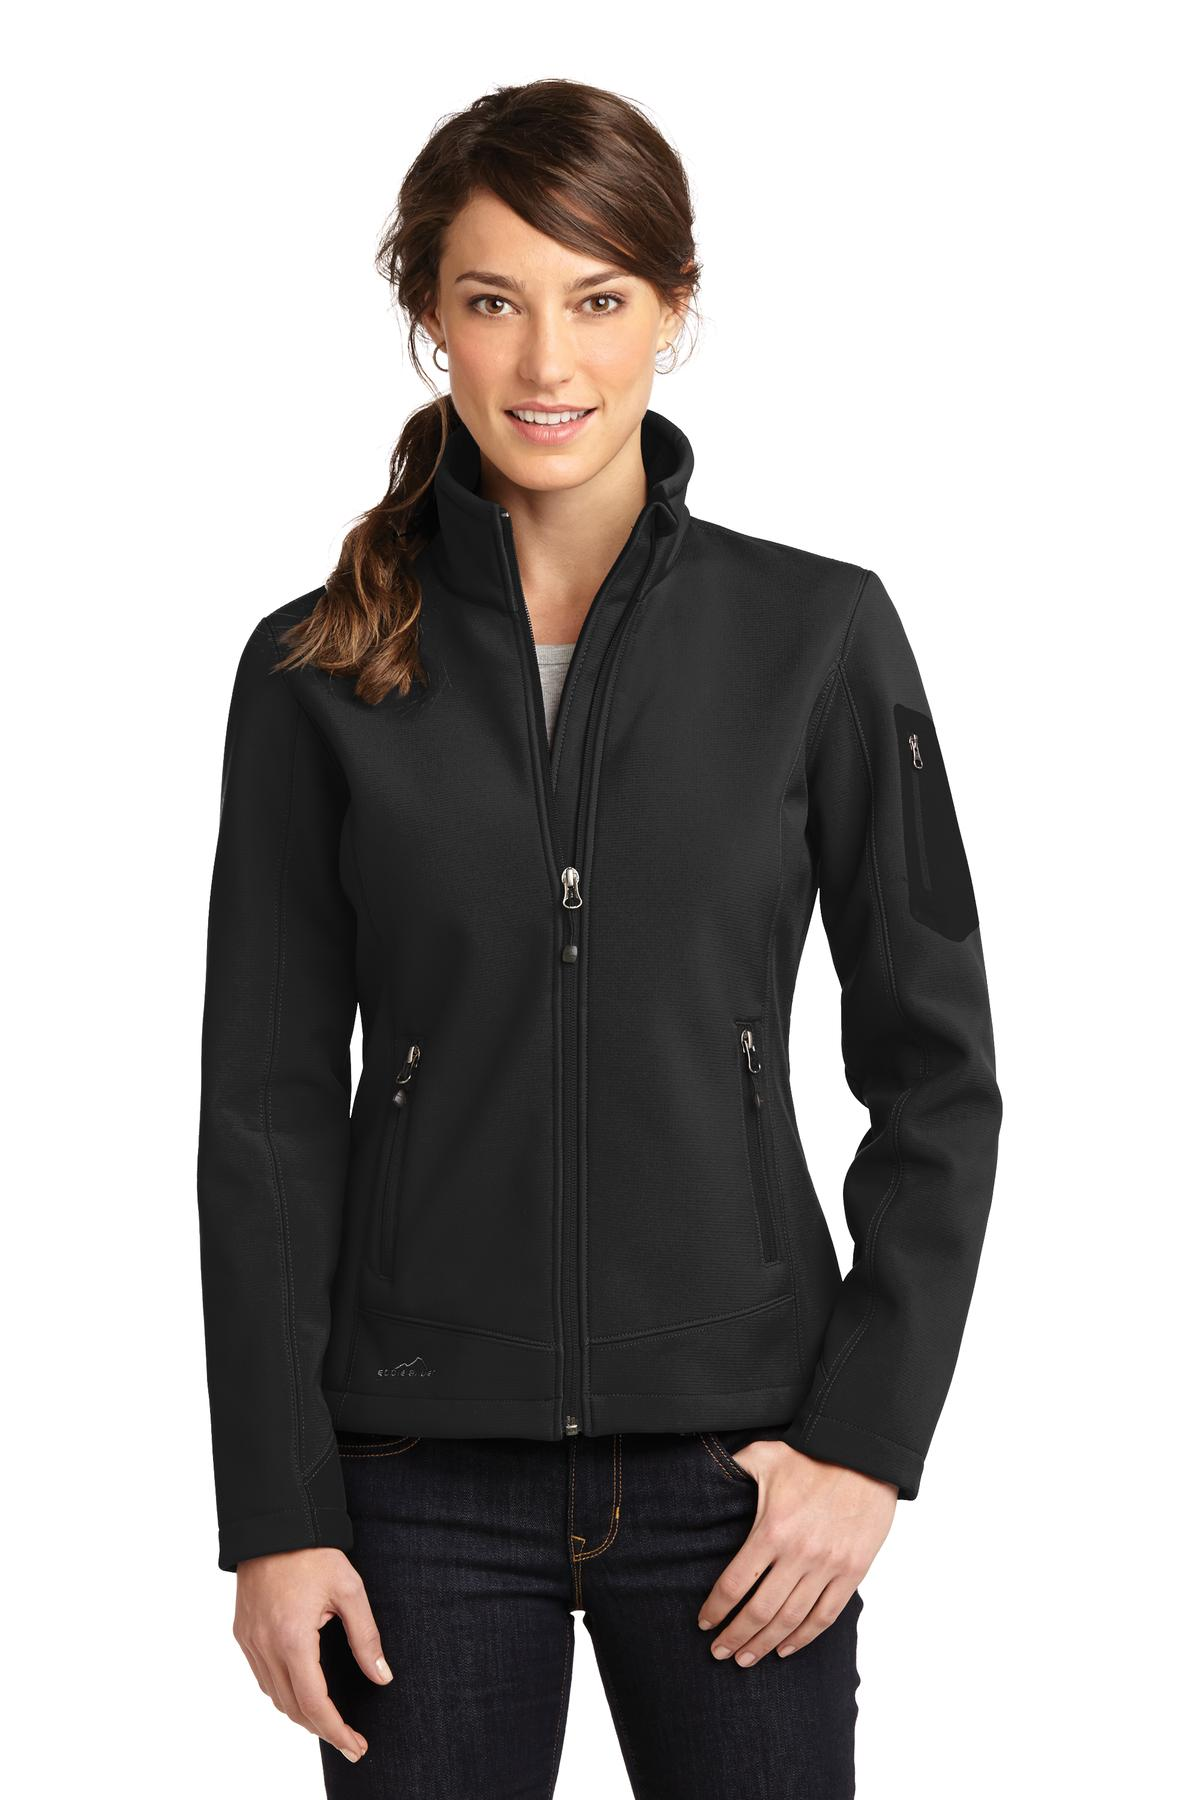 Eddie Bauer Ladies Rugged Ripstop Soft Shell Jacket. EB535